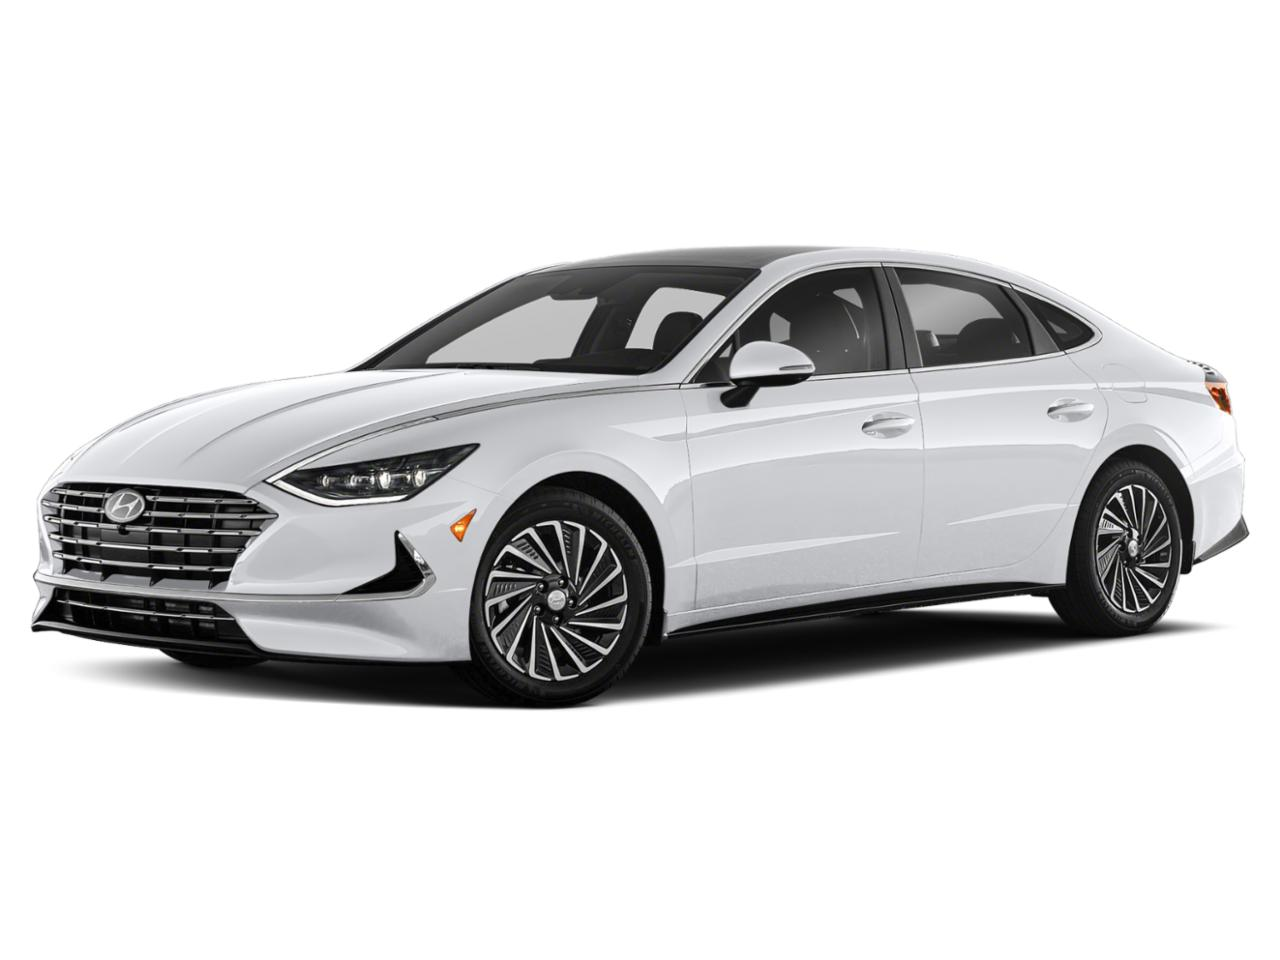 2021 Hyundai Sonata Hybrid Vehicle Photo in O'Fallon, IL 62269